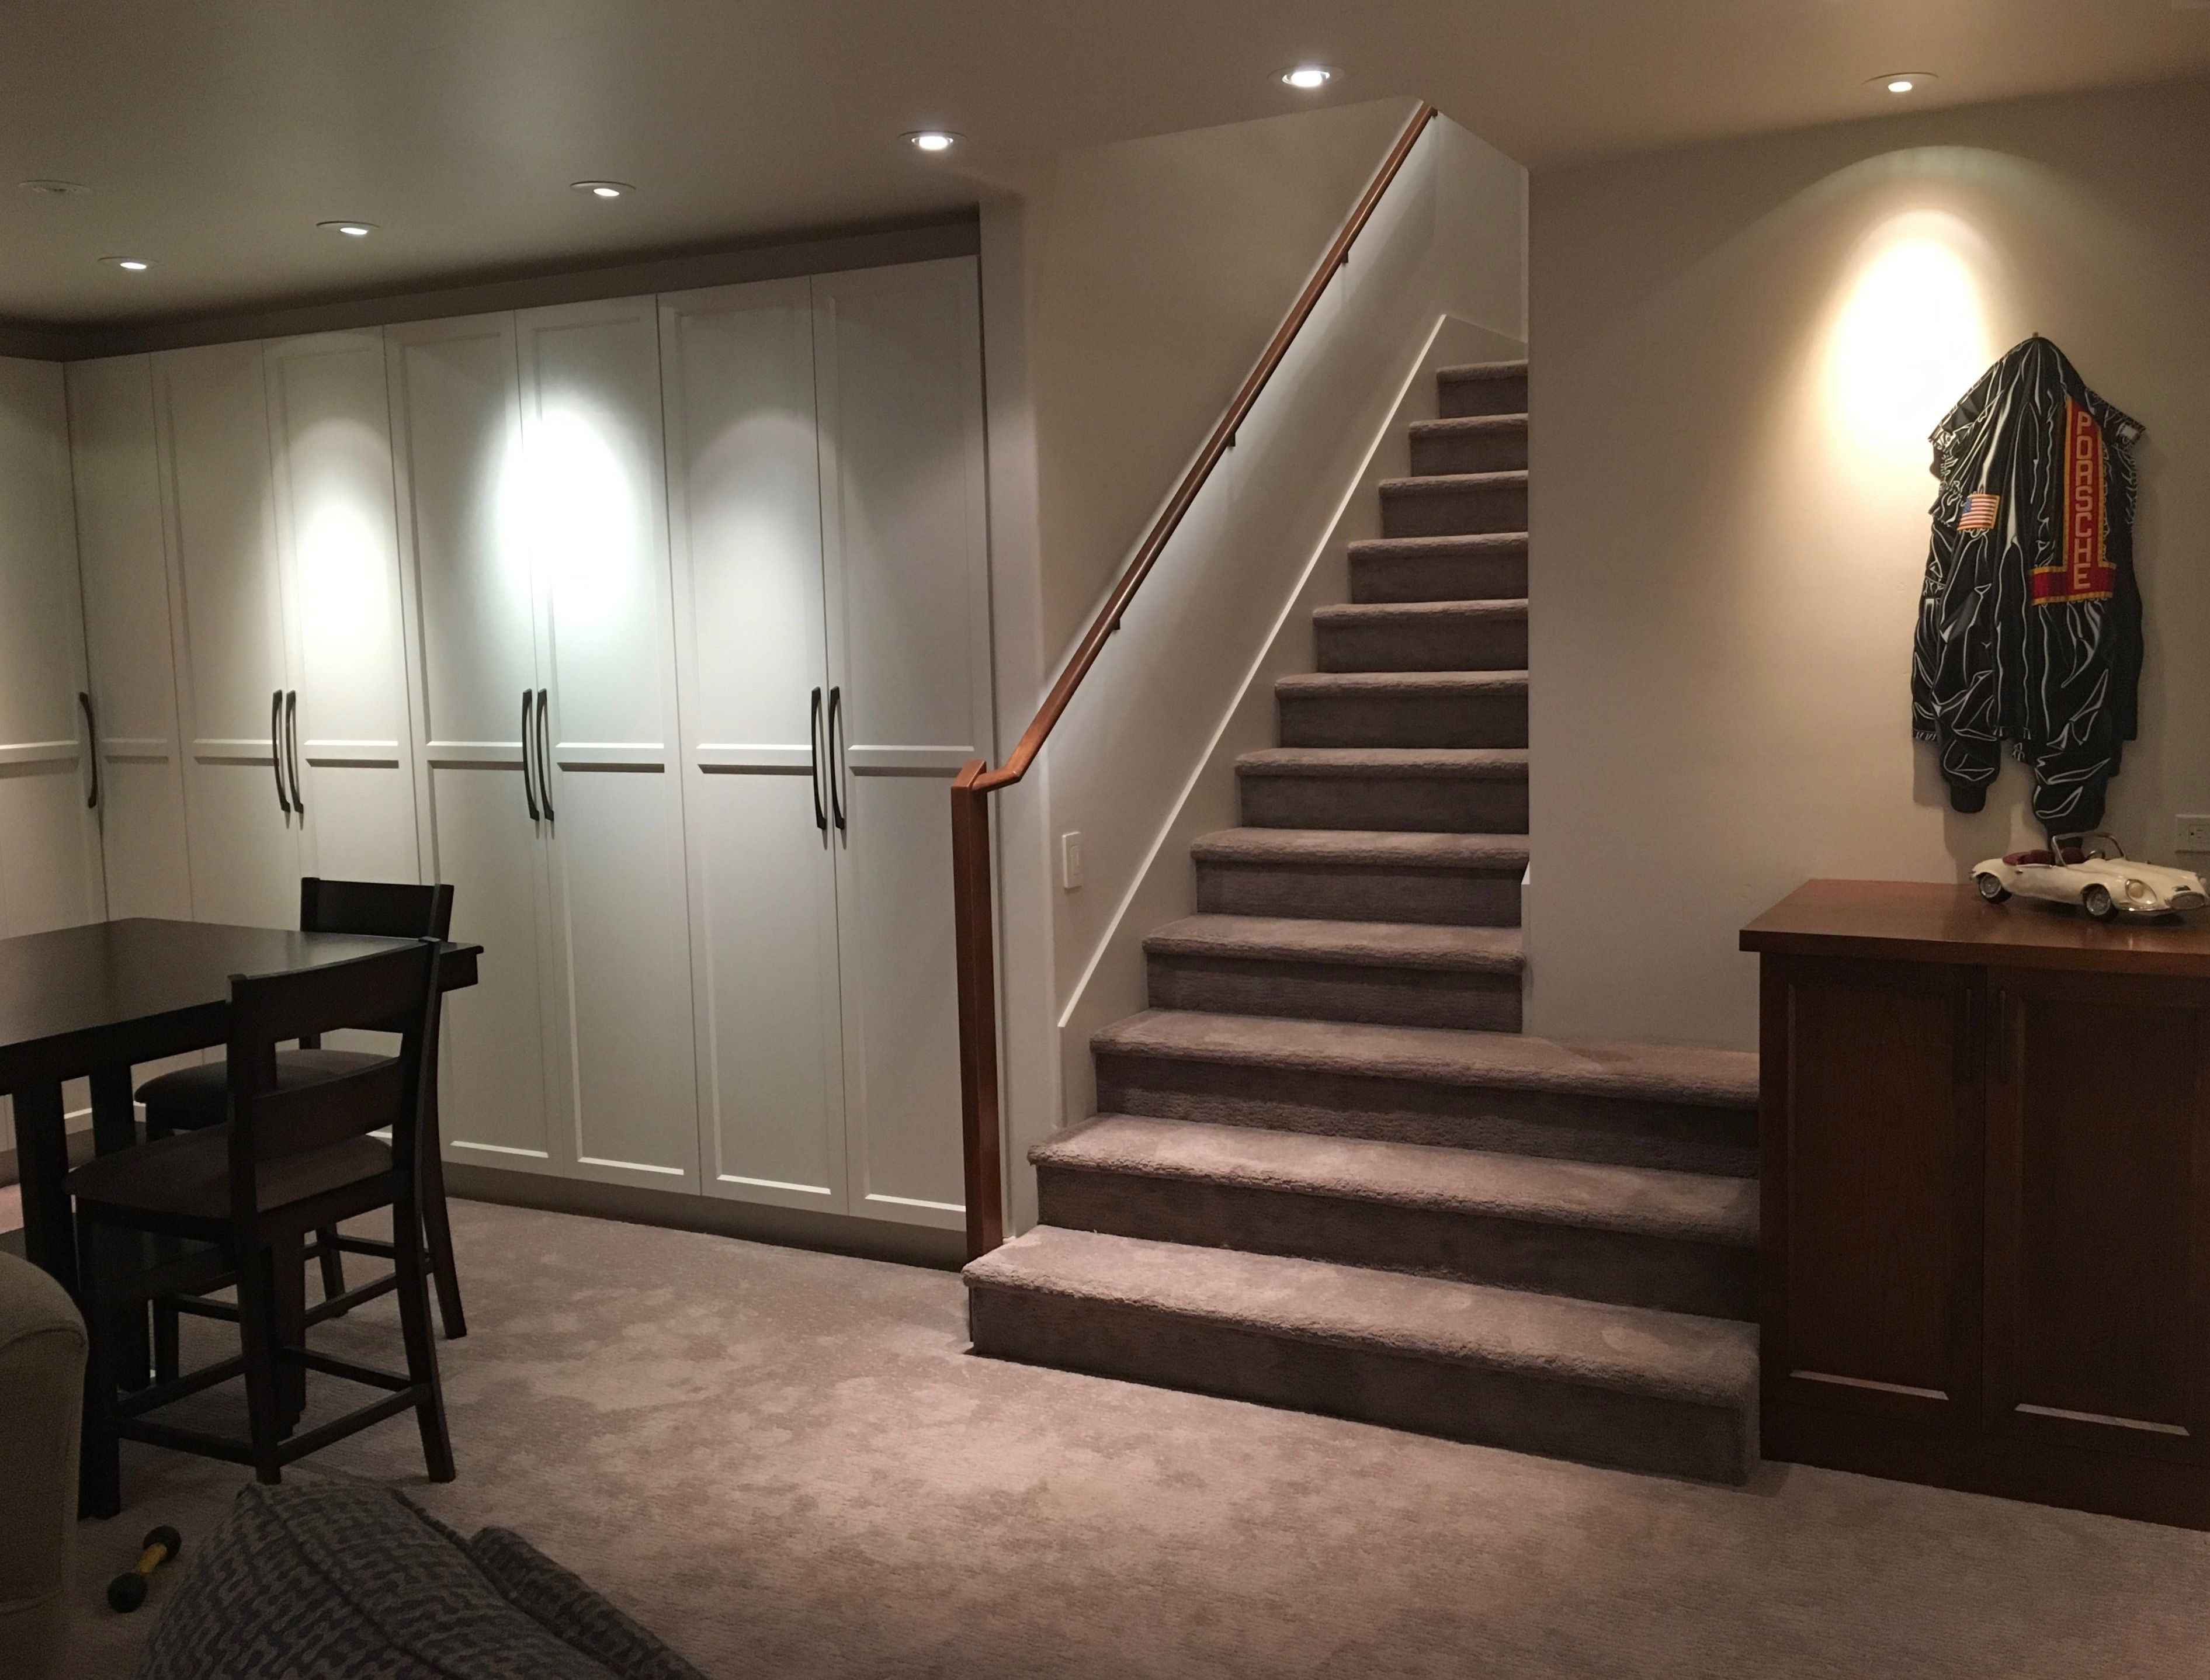 Custom Painted Wall System Media Room Cabinetry By Rc Cabinets Closets For A Sebastopol Client S New Home Wall Systems Closet Cabinets Basement Inspiration